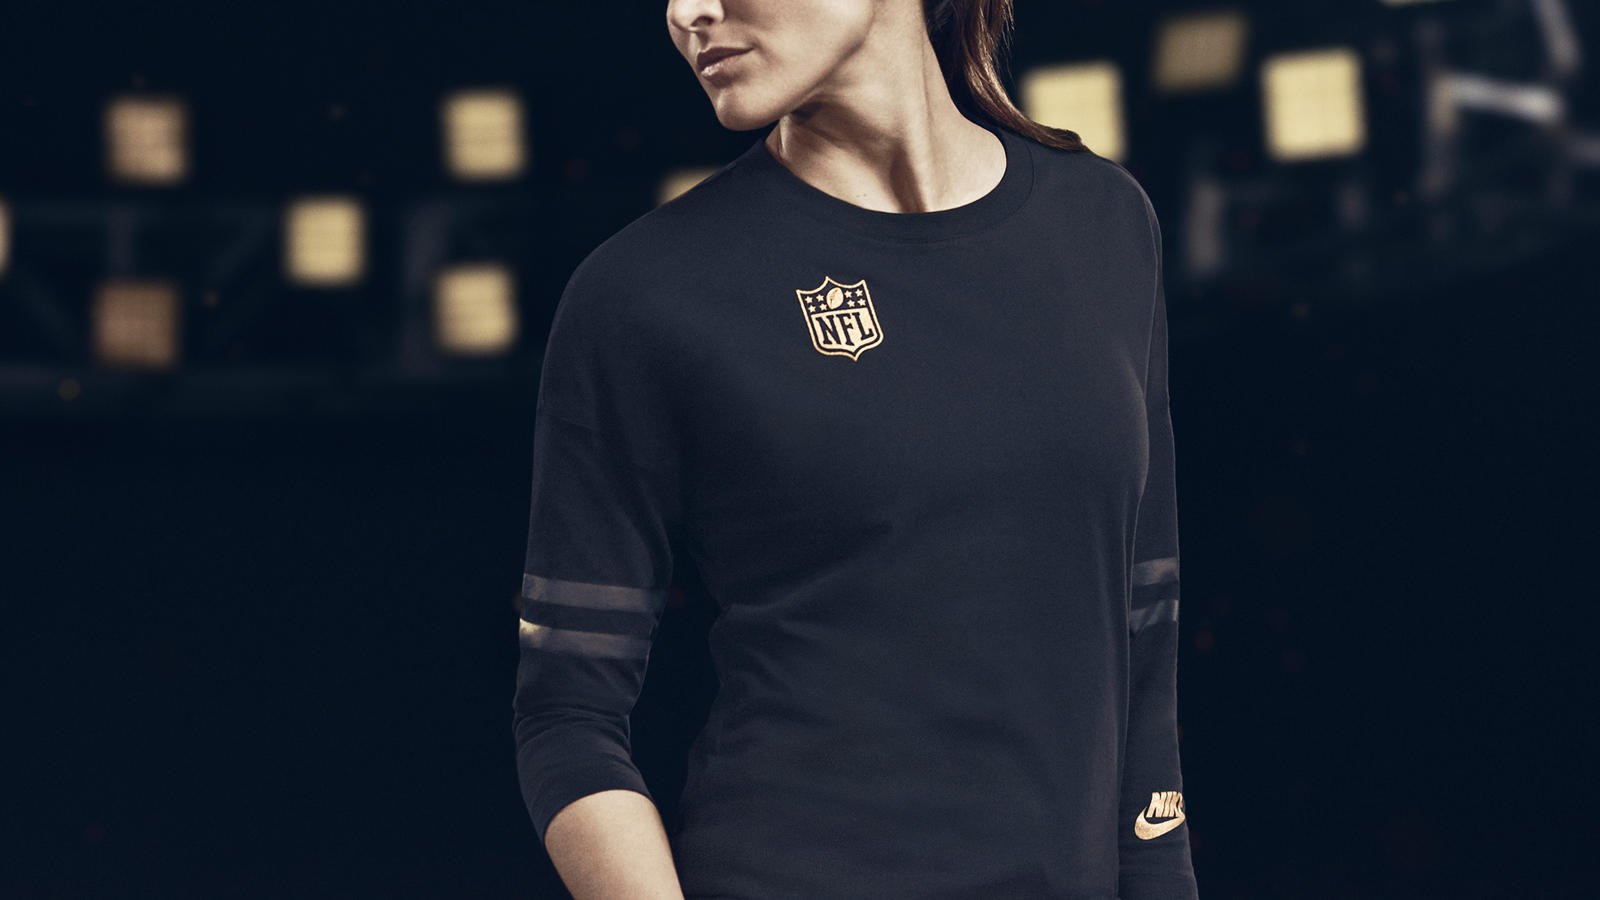 SP16_NSW_SB50_NIKE_Graphic_Top_NA_Womens_CROP_0829